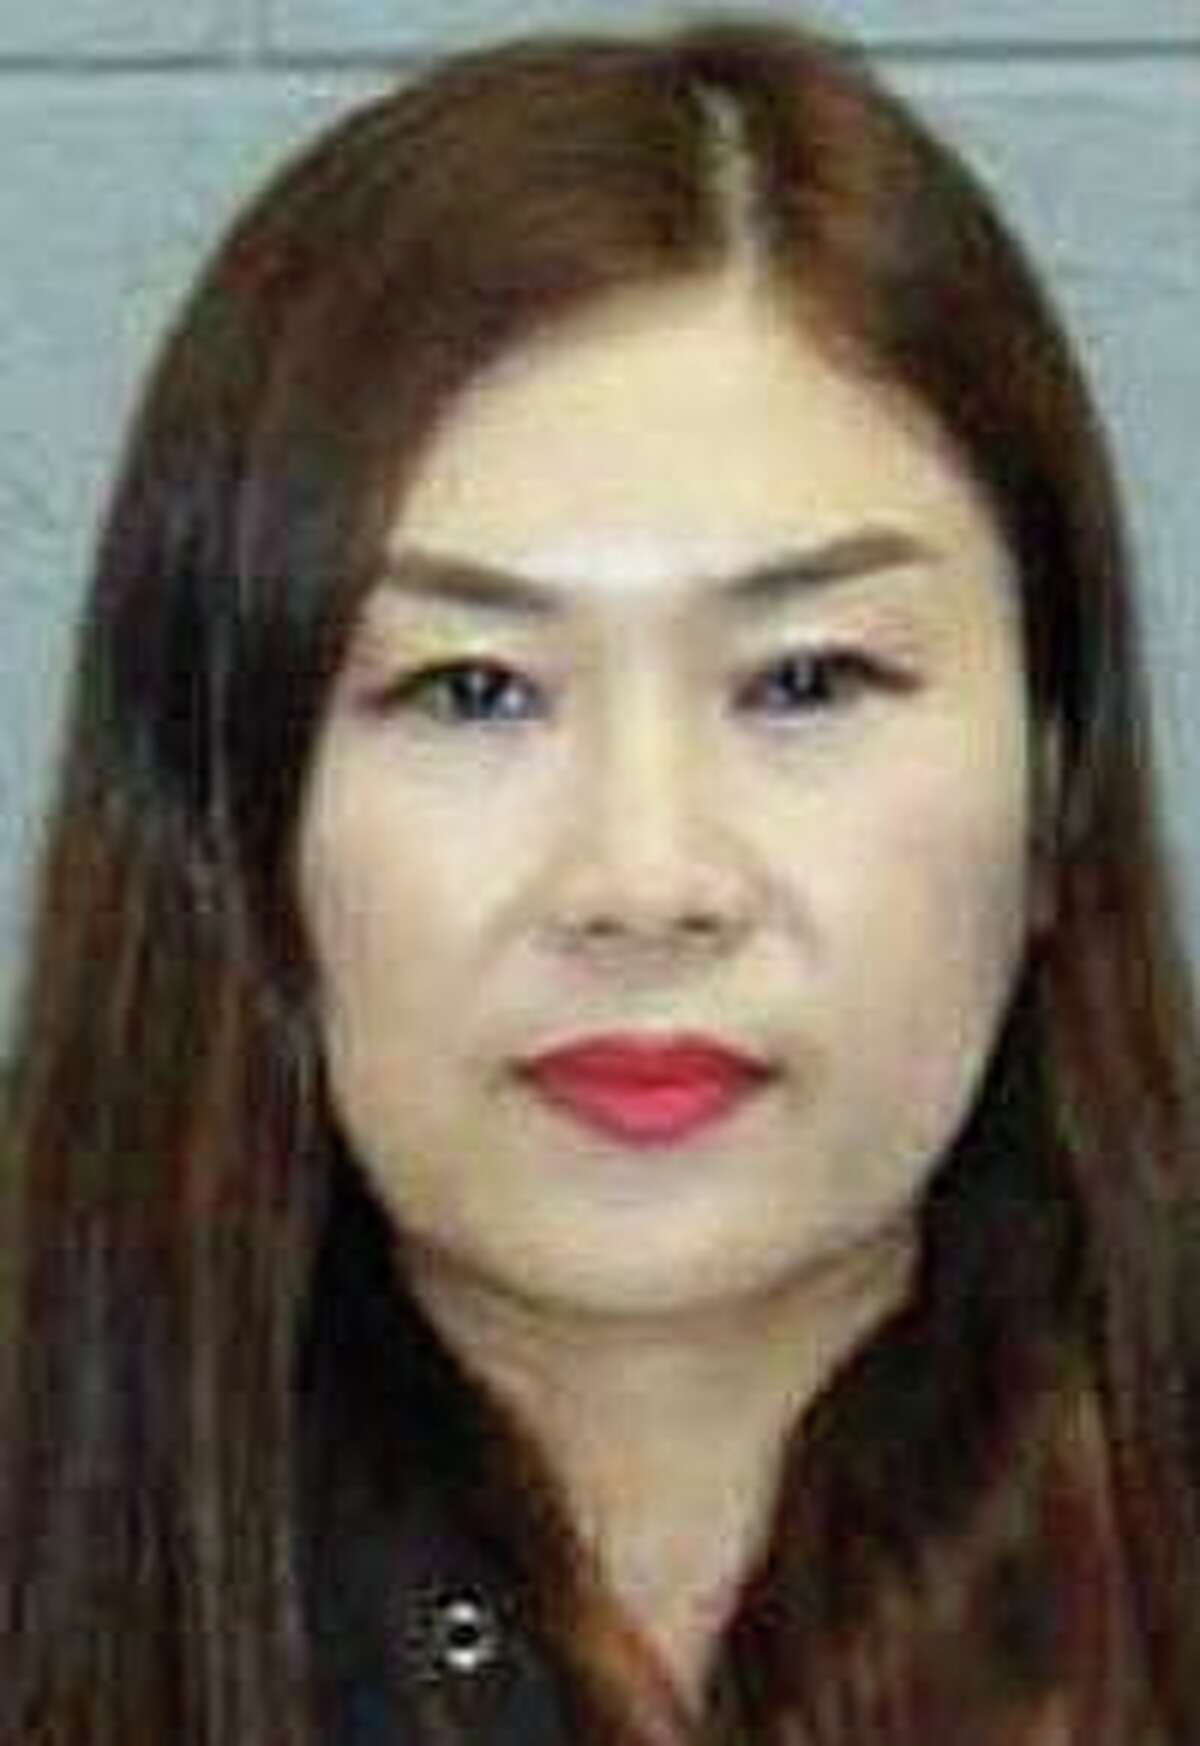 Kun Liu, 50, of Flushing, N.Y. was arrested on Oct. 23, 2019 on charges of prostitution of a person 16 or over and conspiracy to commit/prostitution person 16 or over.